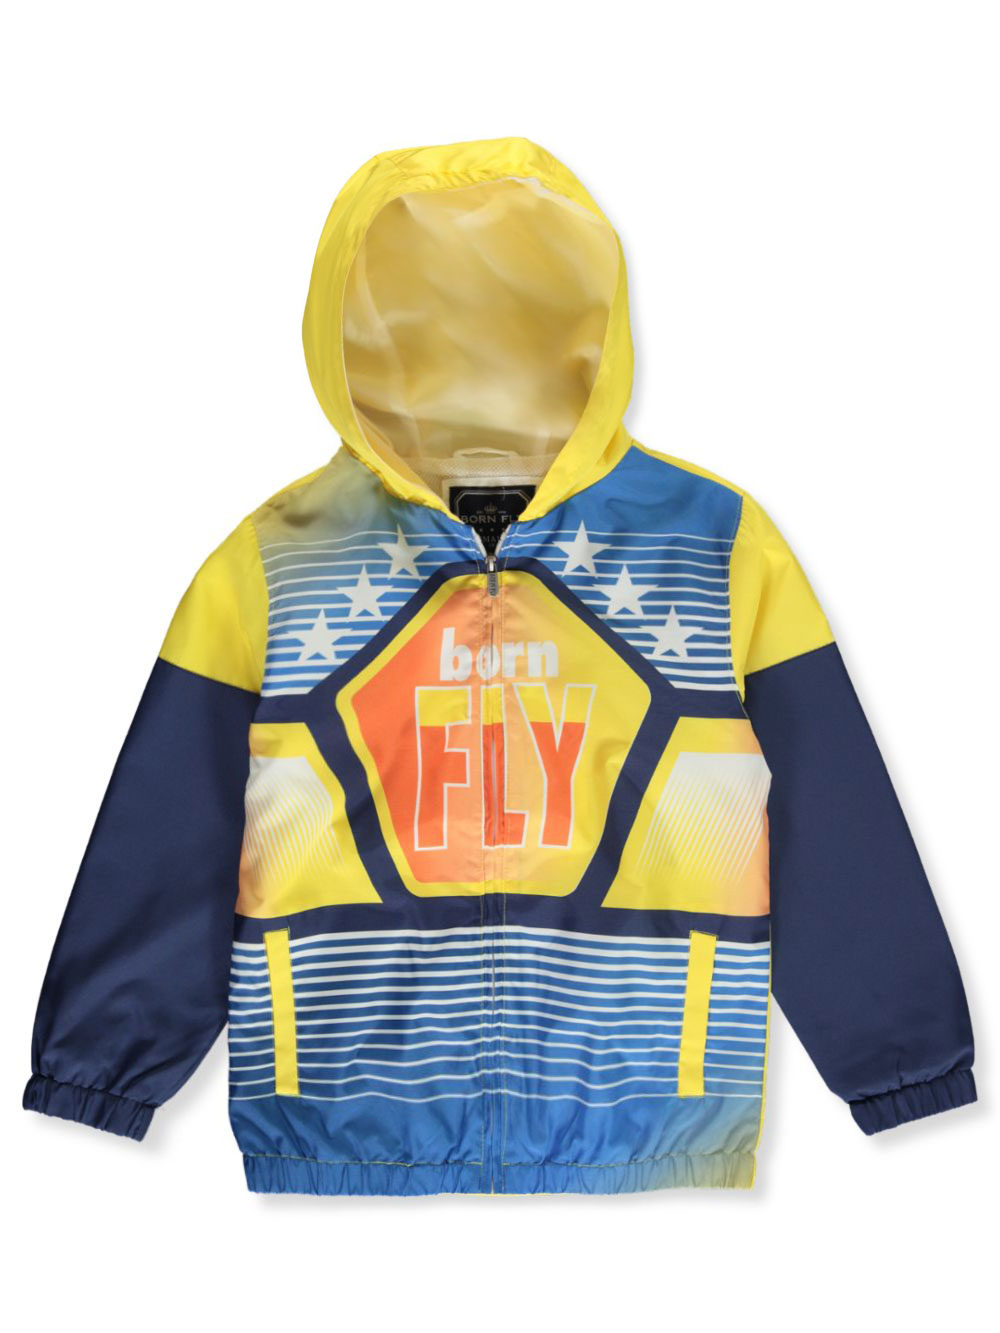 Born Fly Jackets